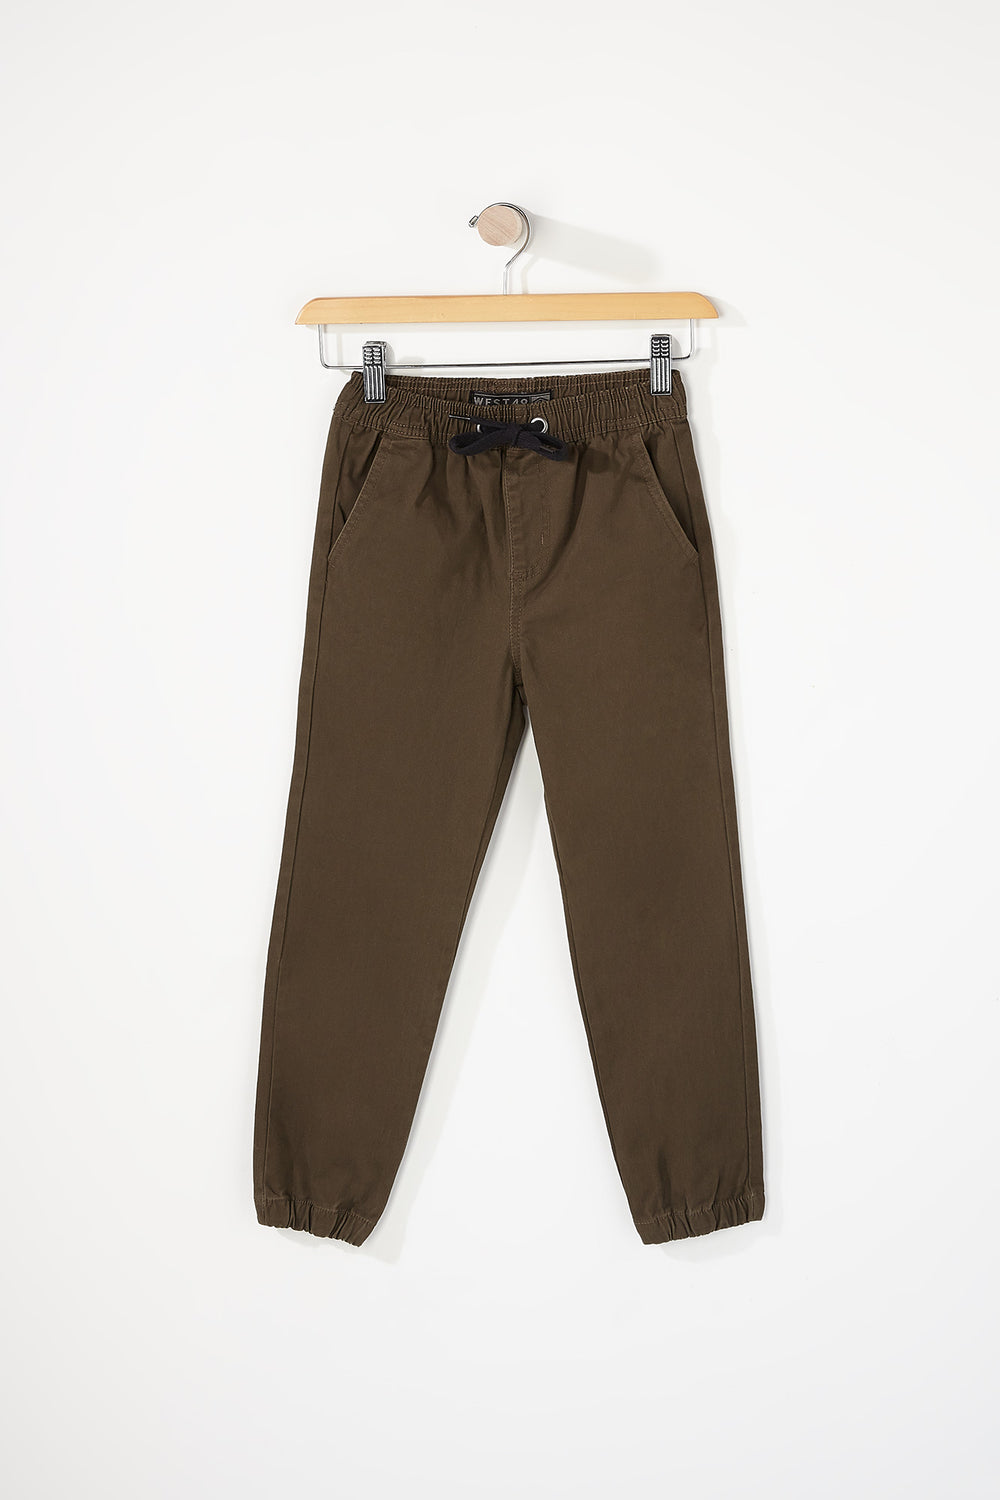 West49 Boys Basic Jogger Khaki